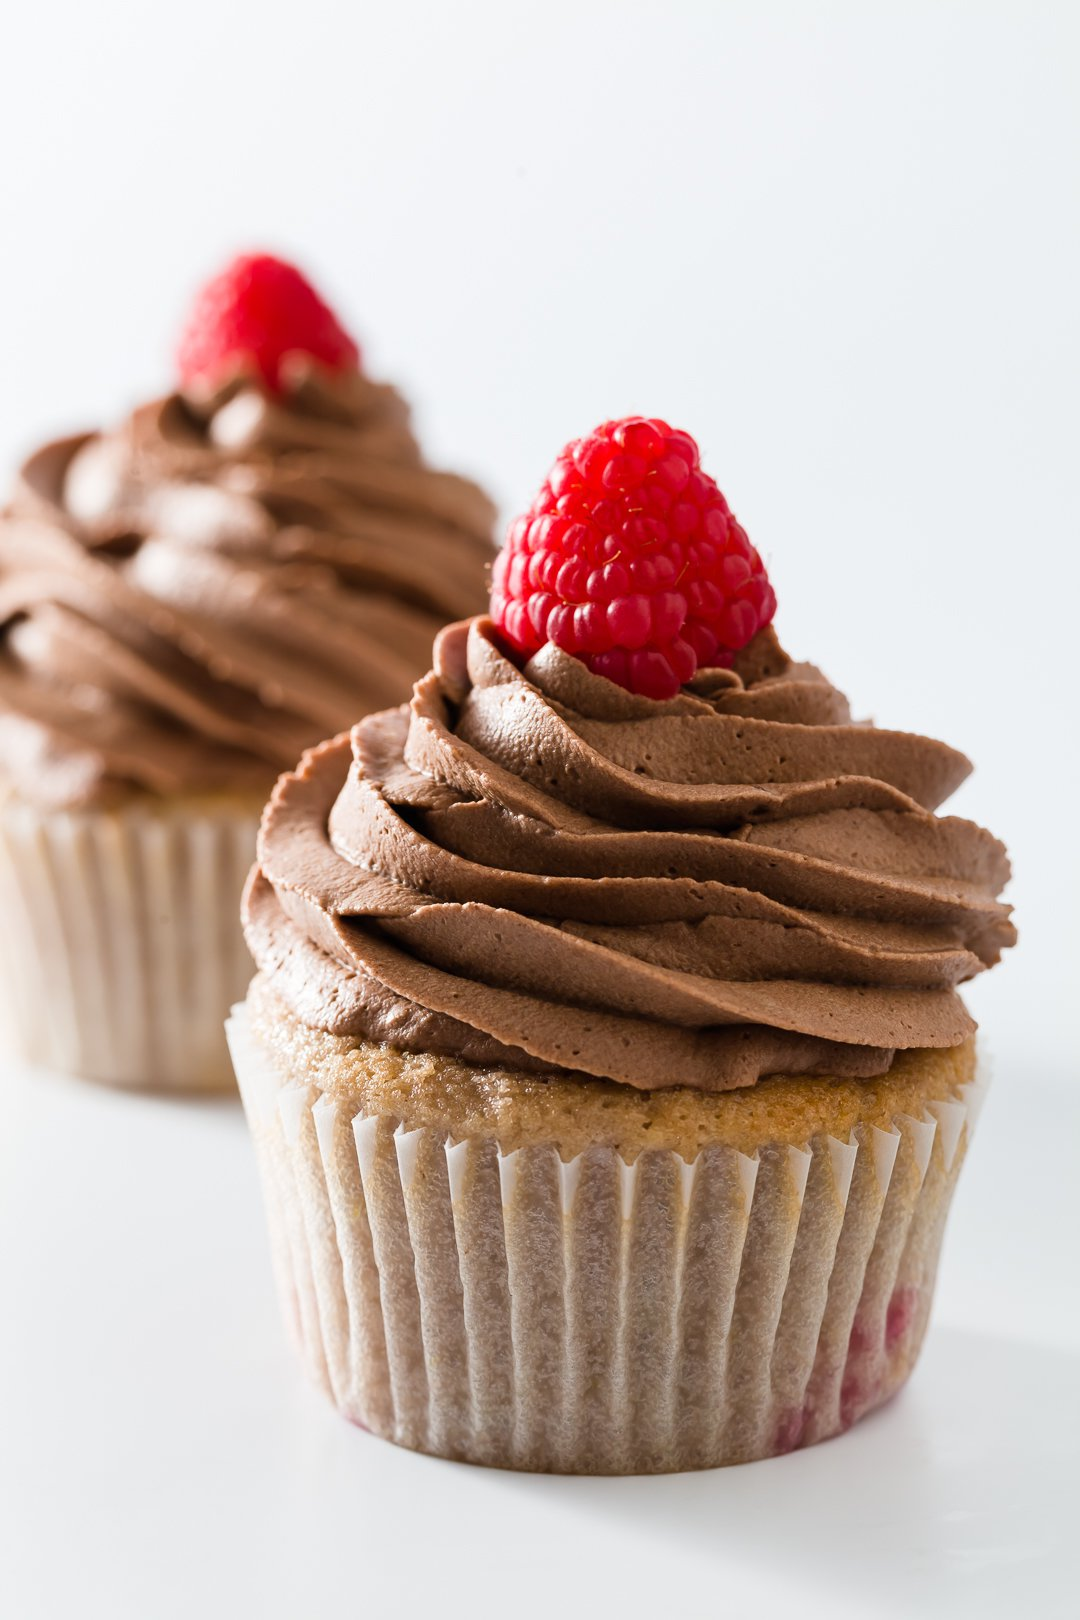 Raspberry Cupcakes with Chocolate Whipped Cream